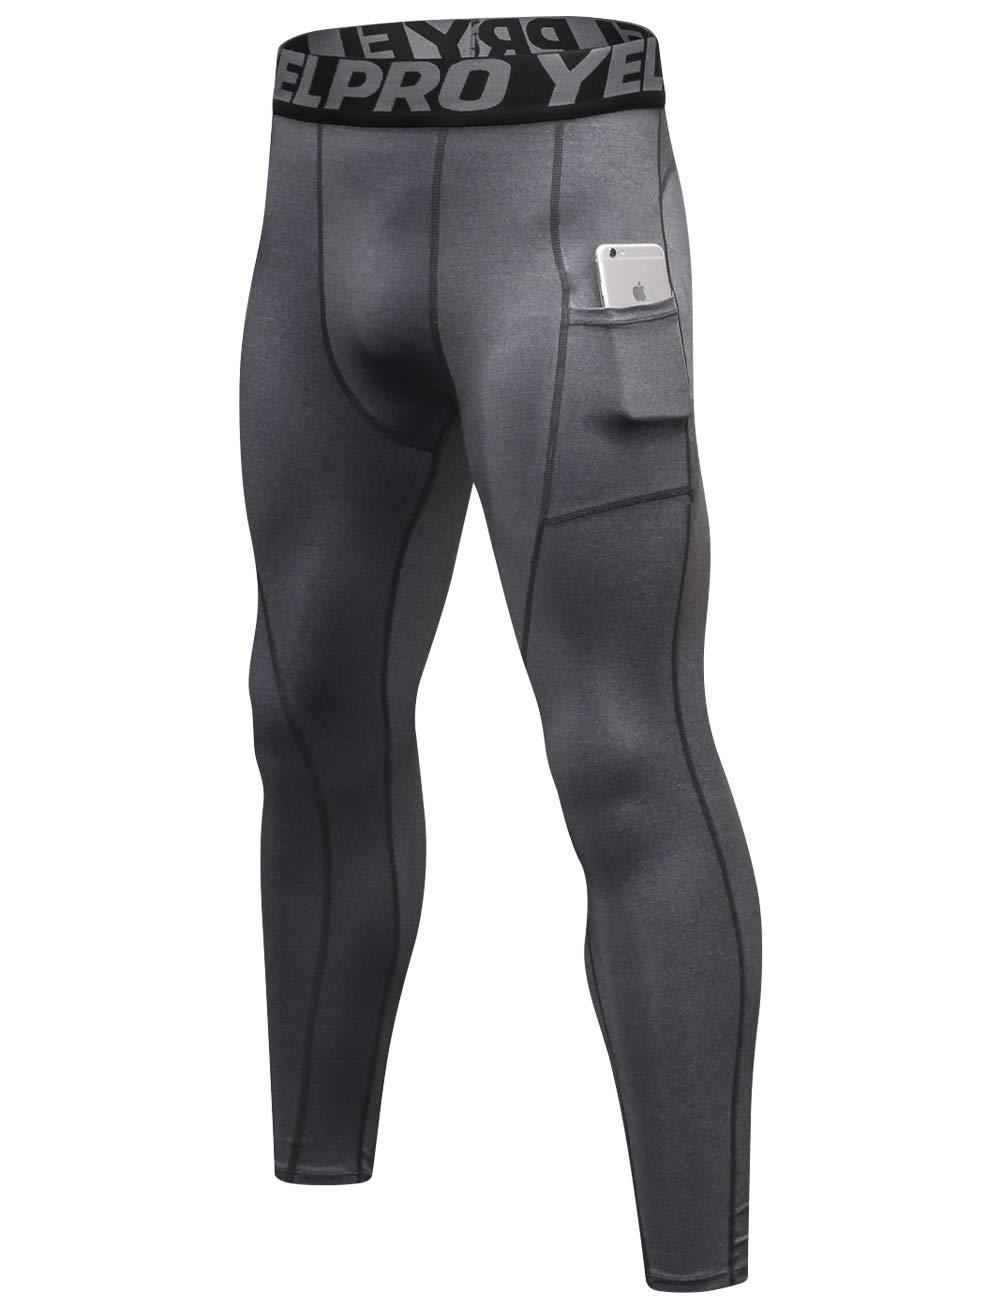 Lavento Men's Compression Pants Baselayer Cool Dry Pocket Running Ankle Leggings Active Tights (1 Pack-3911 Gray,2X-Large)